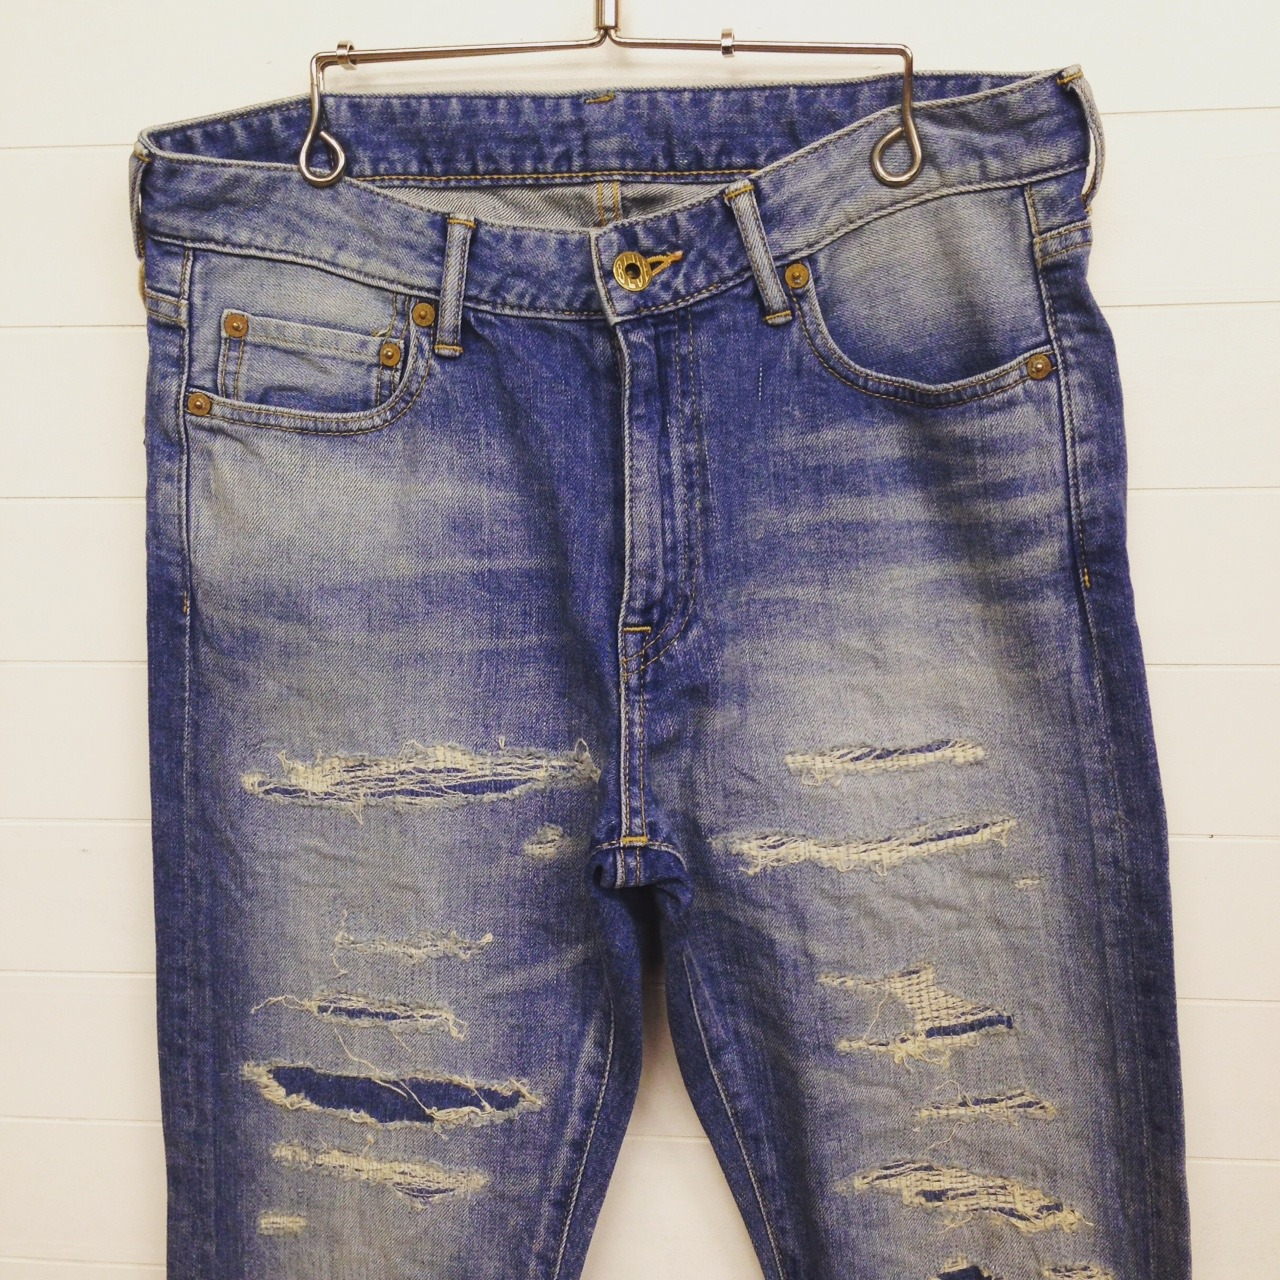 JAPAN BLUE JEANS(ジャパンブルージーンズ) 10oz CALIF DENIM BEVERLY JB2300BE